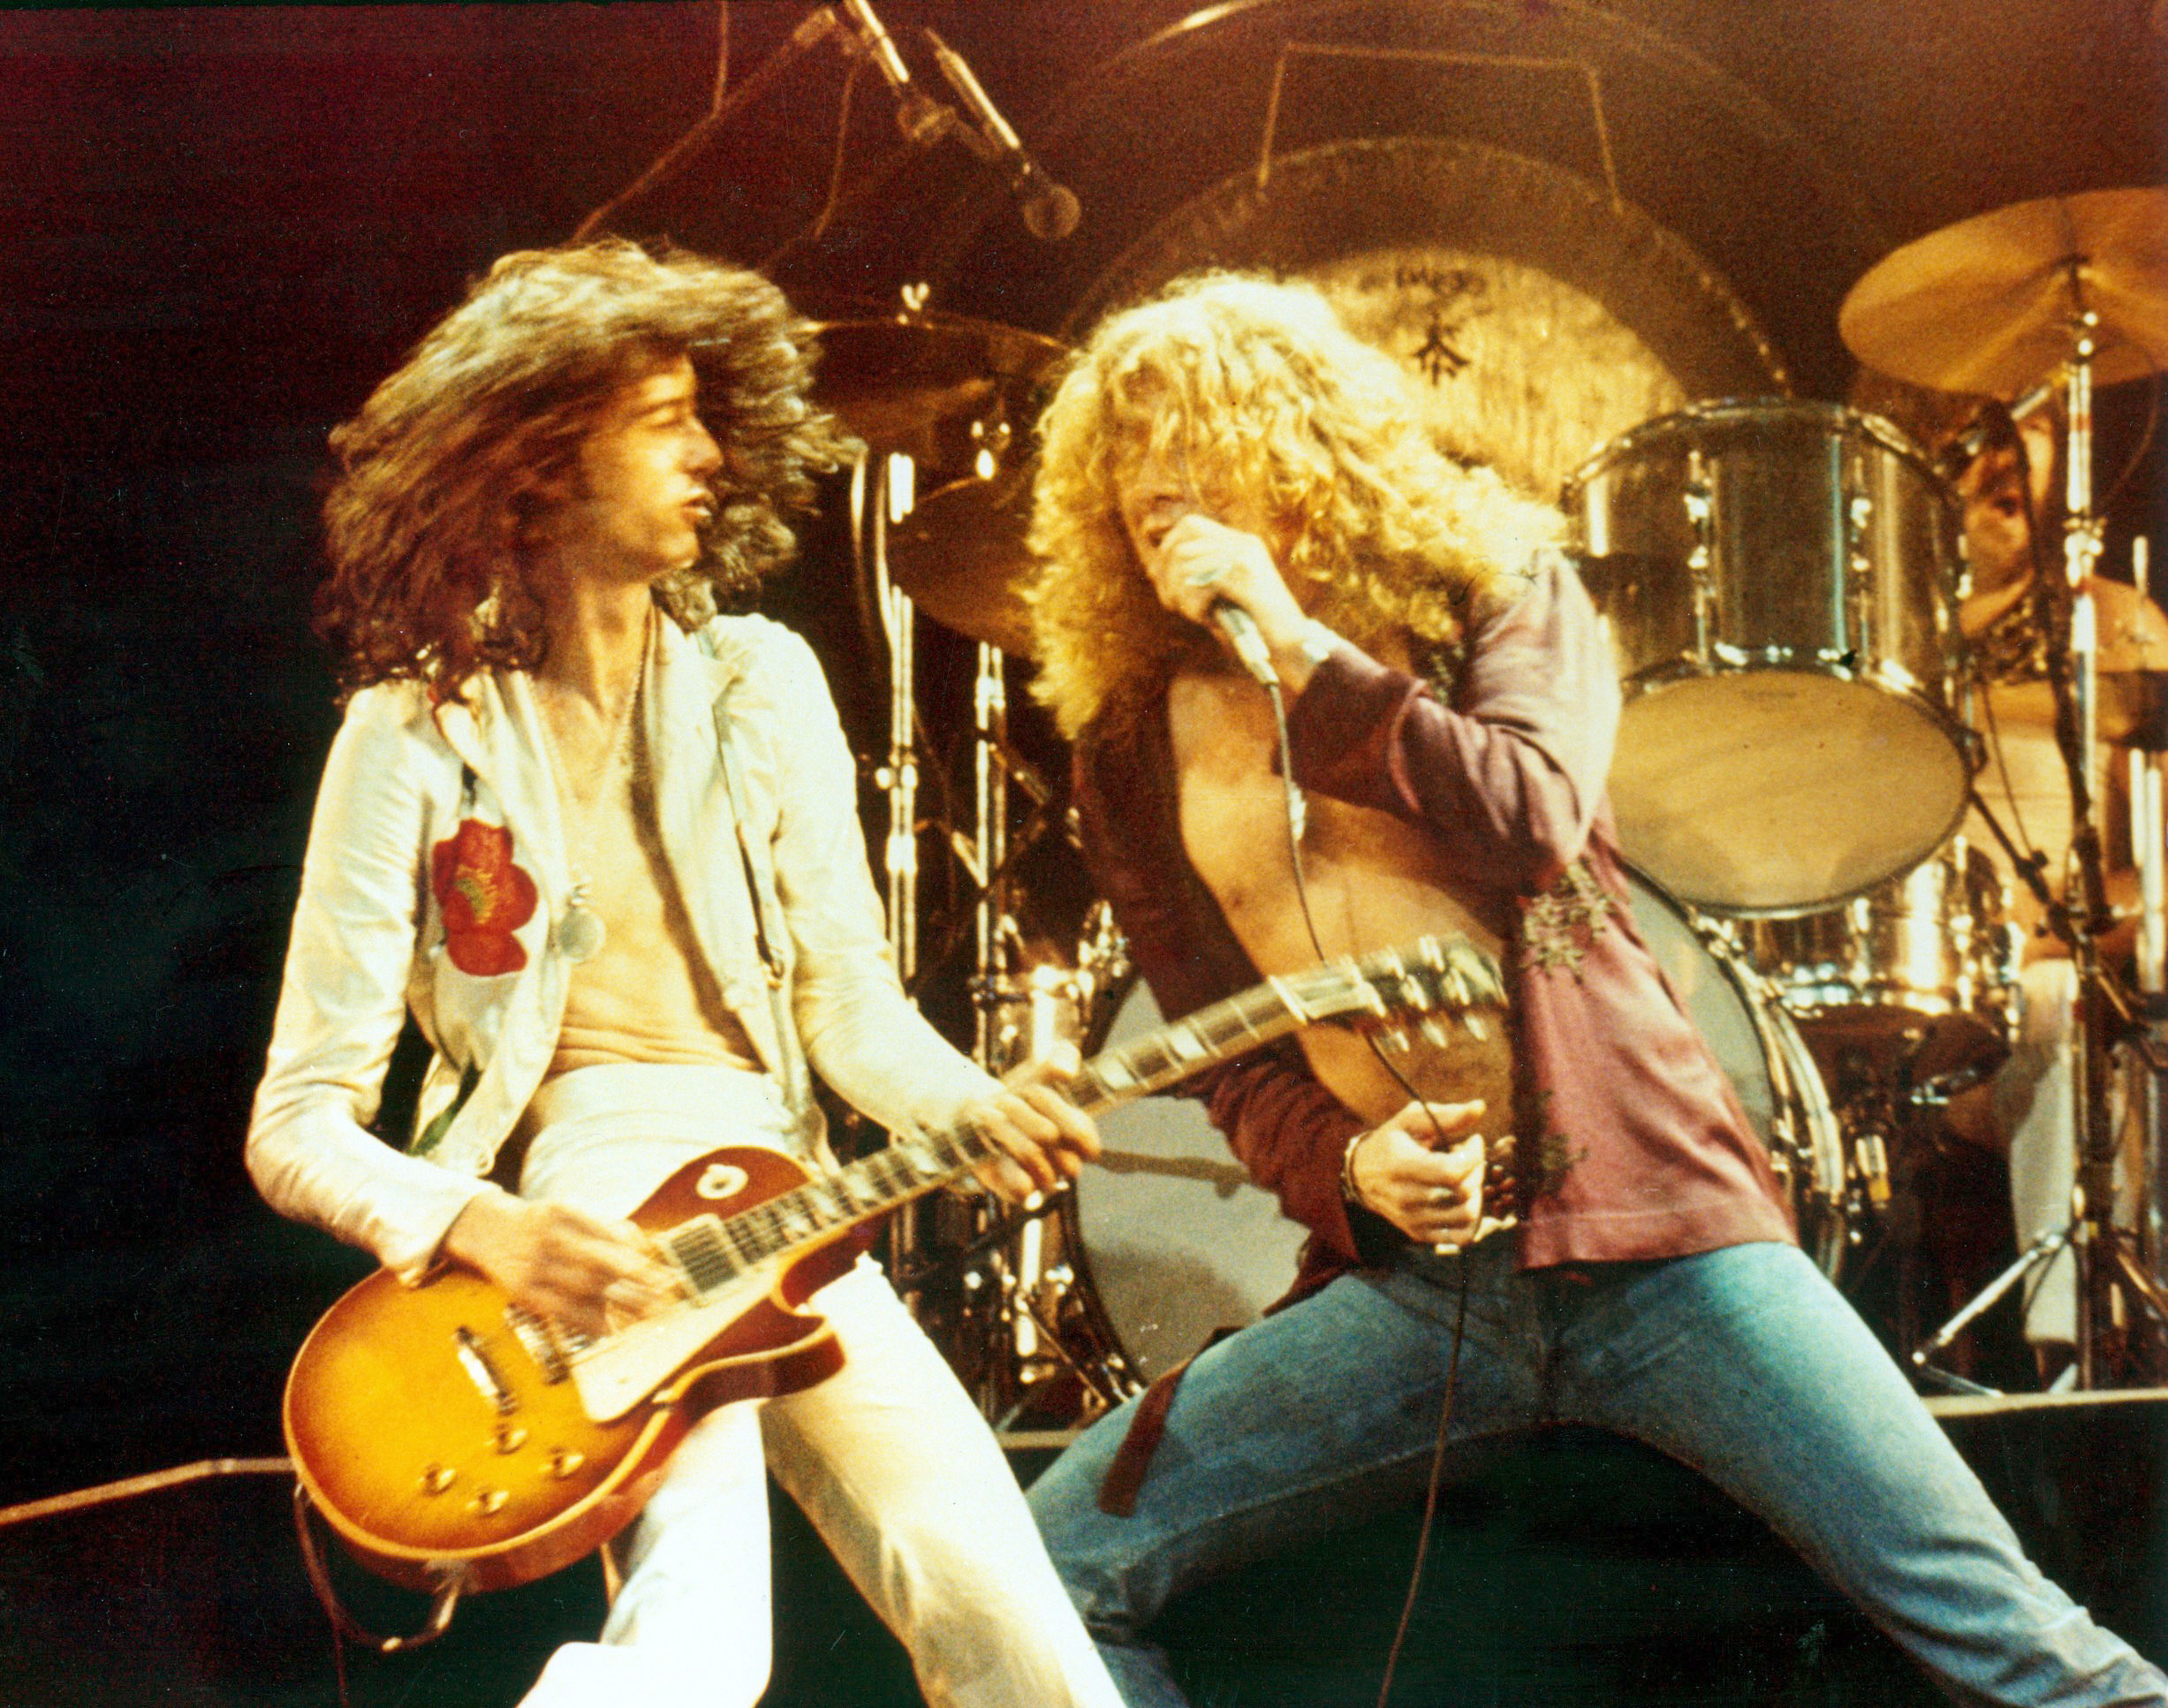 b4f717c1 Inside Led Zeppelin's 'The Song Remains the Same' – Rolling Stone